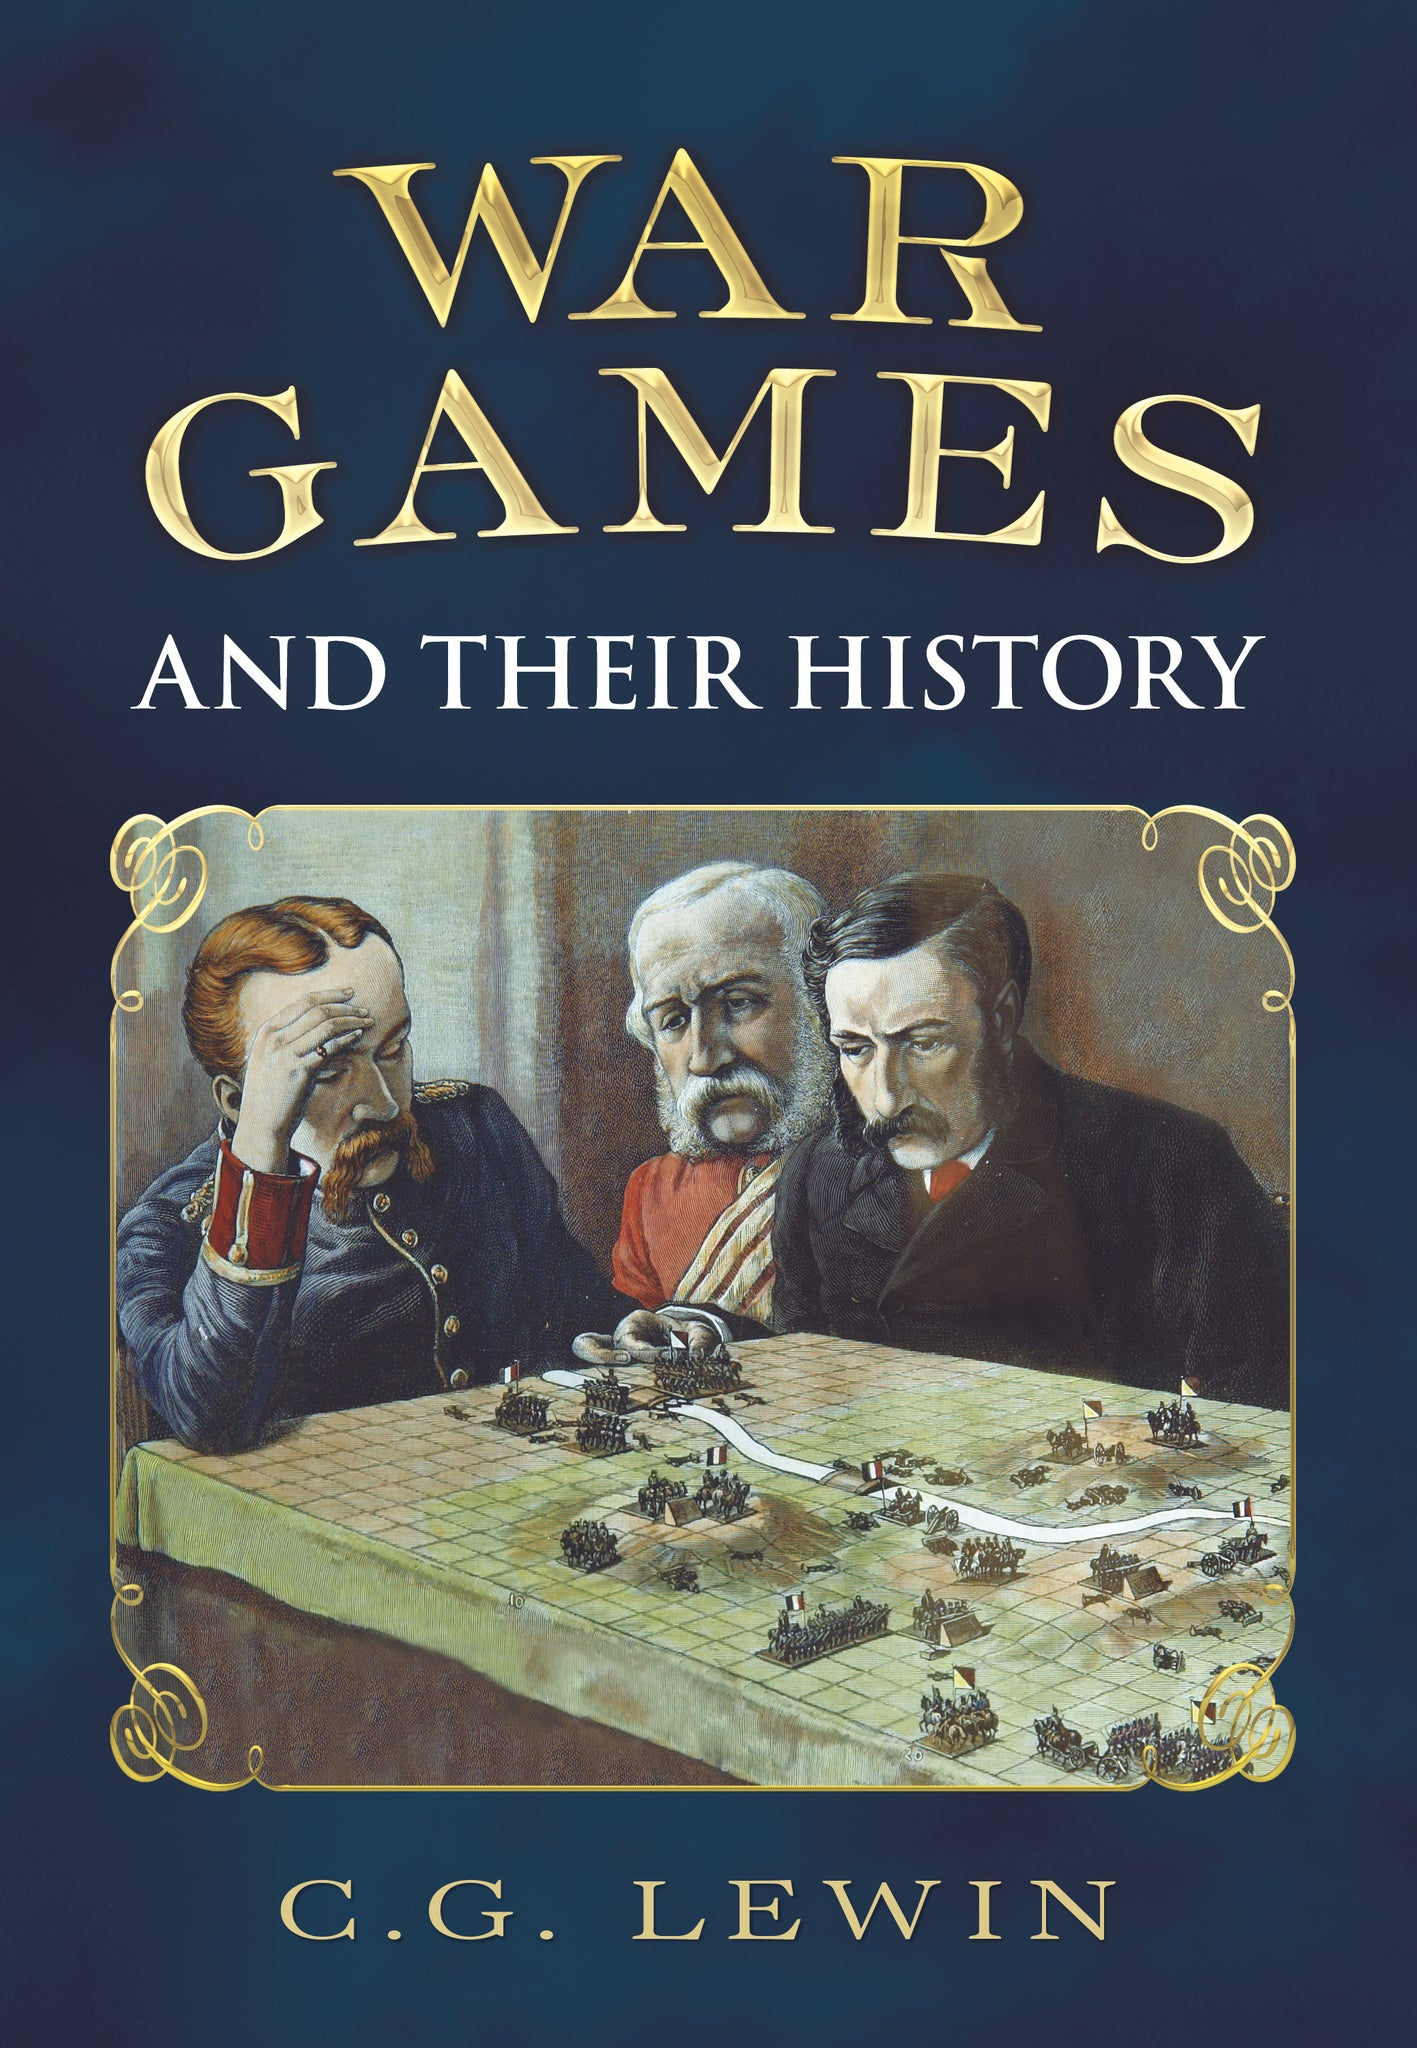 War Games and their History